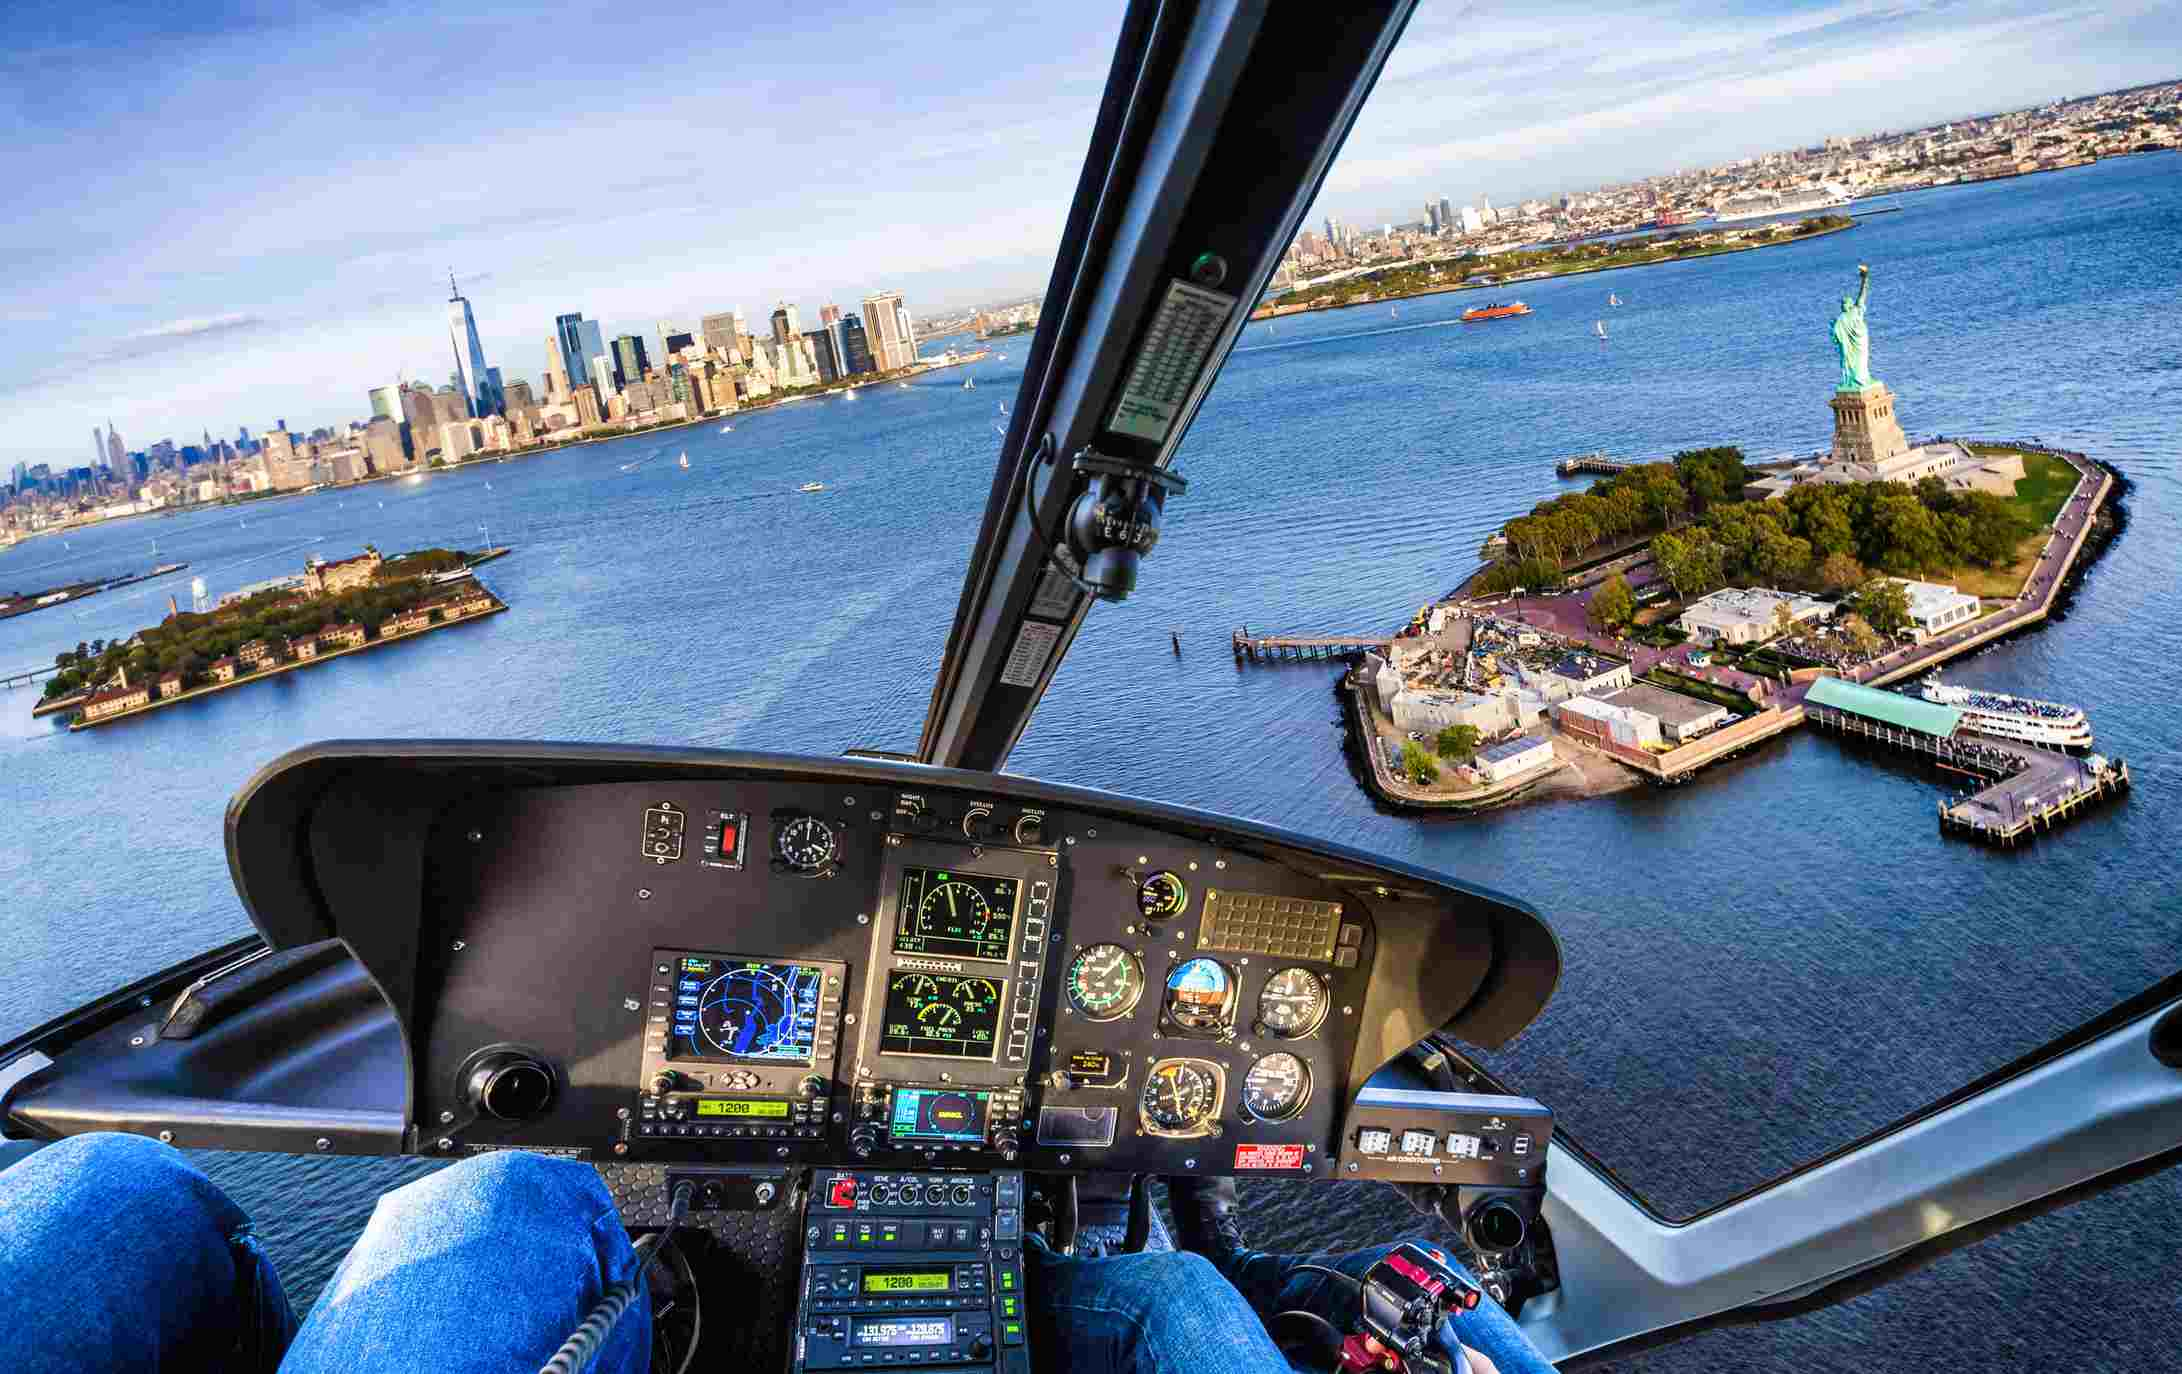 https://bubo.sk/uploads/galleries/5003/nycaerialphotographyworkshopinopen-doorhelicopter-5b881872c9e77c002ccb8054.jpg